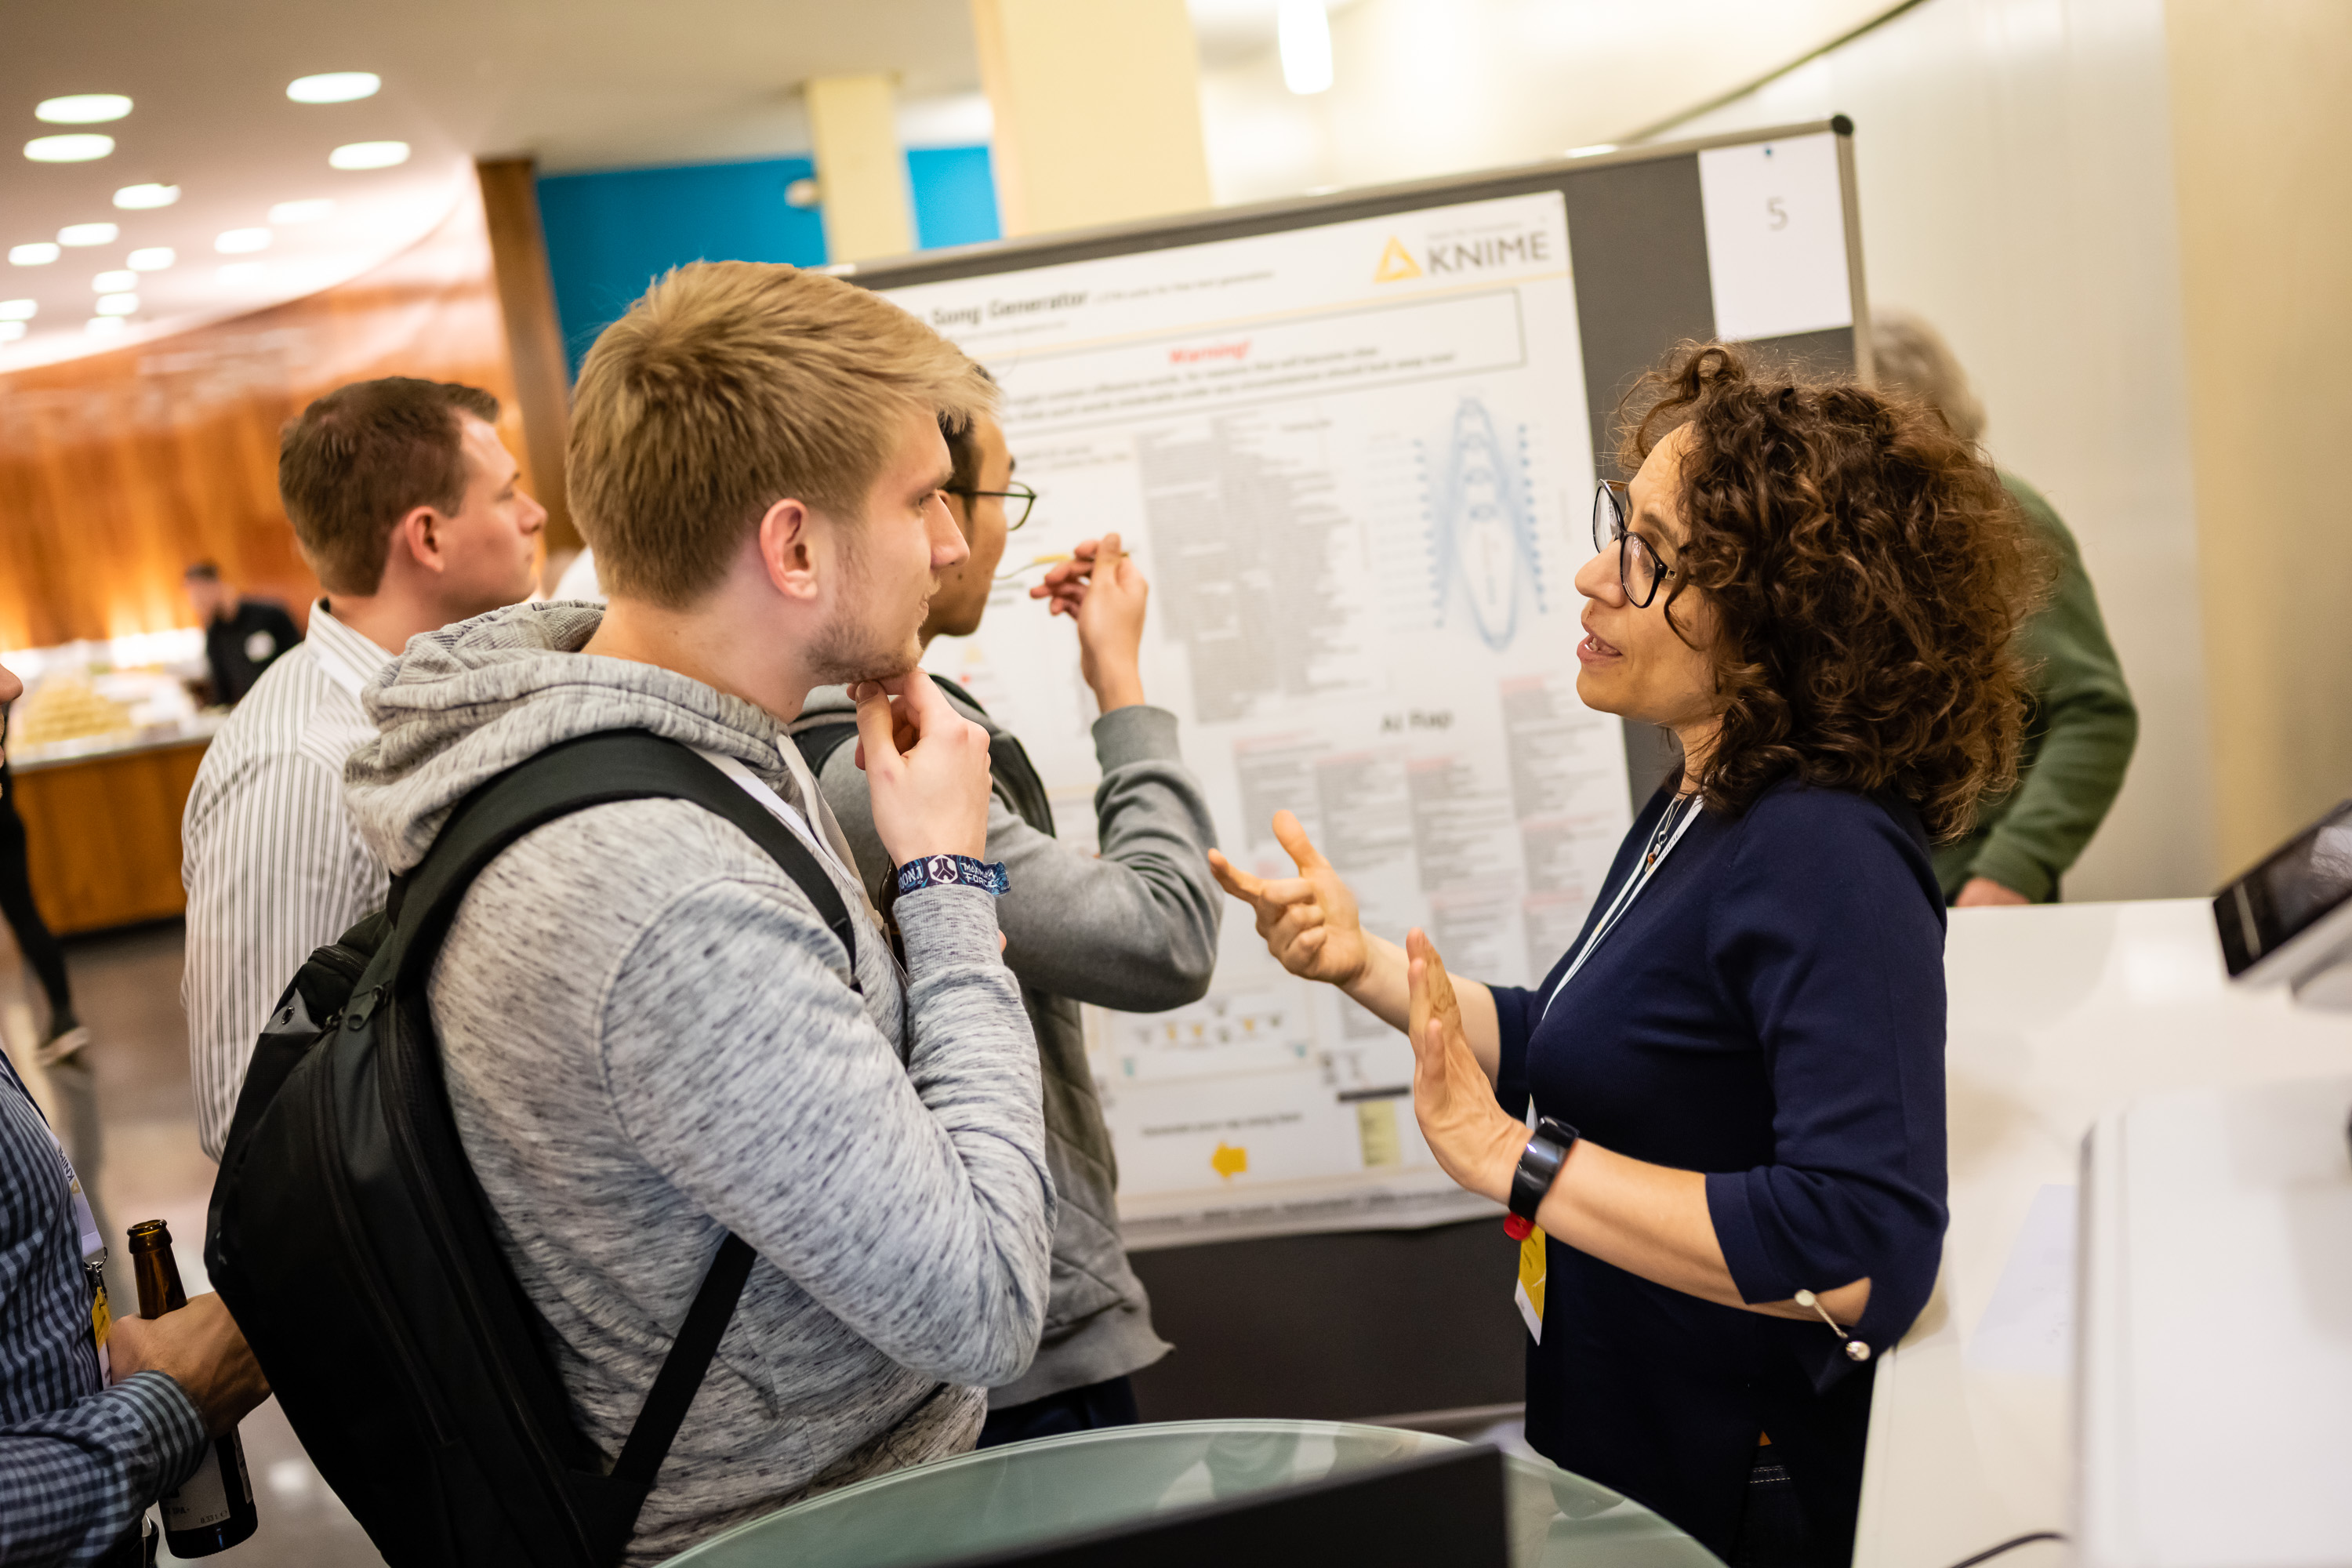 KNIME Poster Session